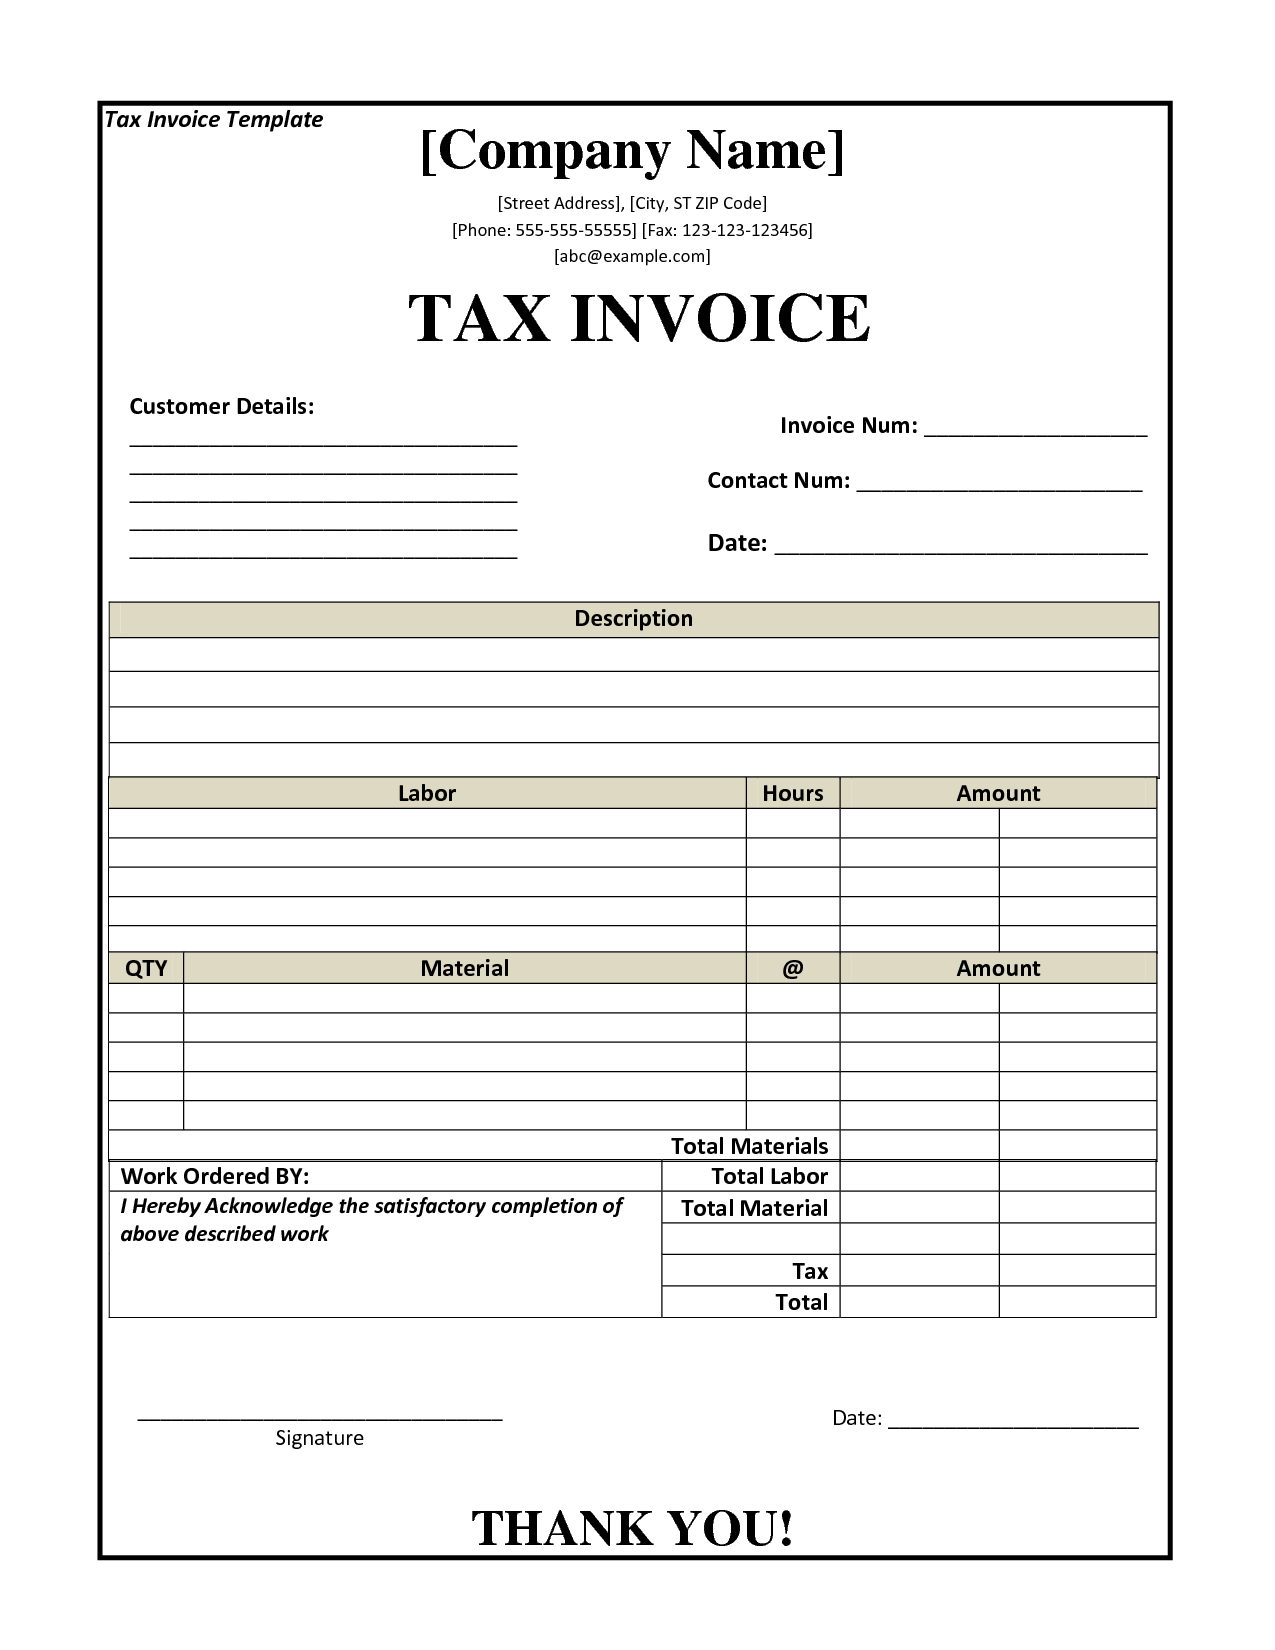 ato tax invoice template invoice example